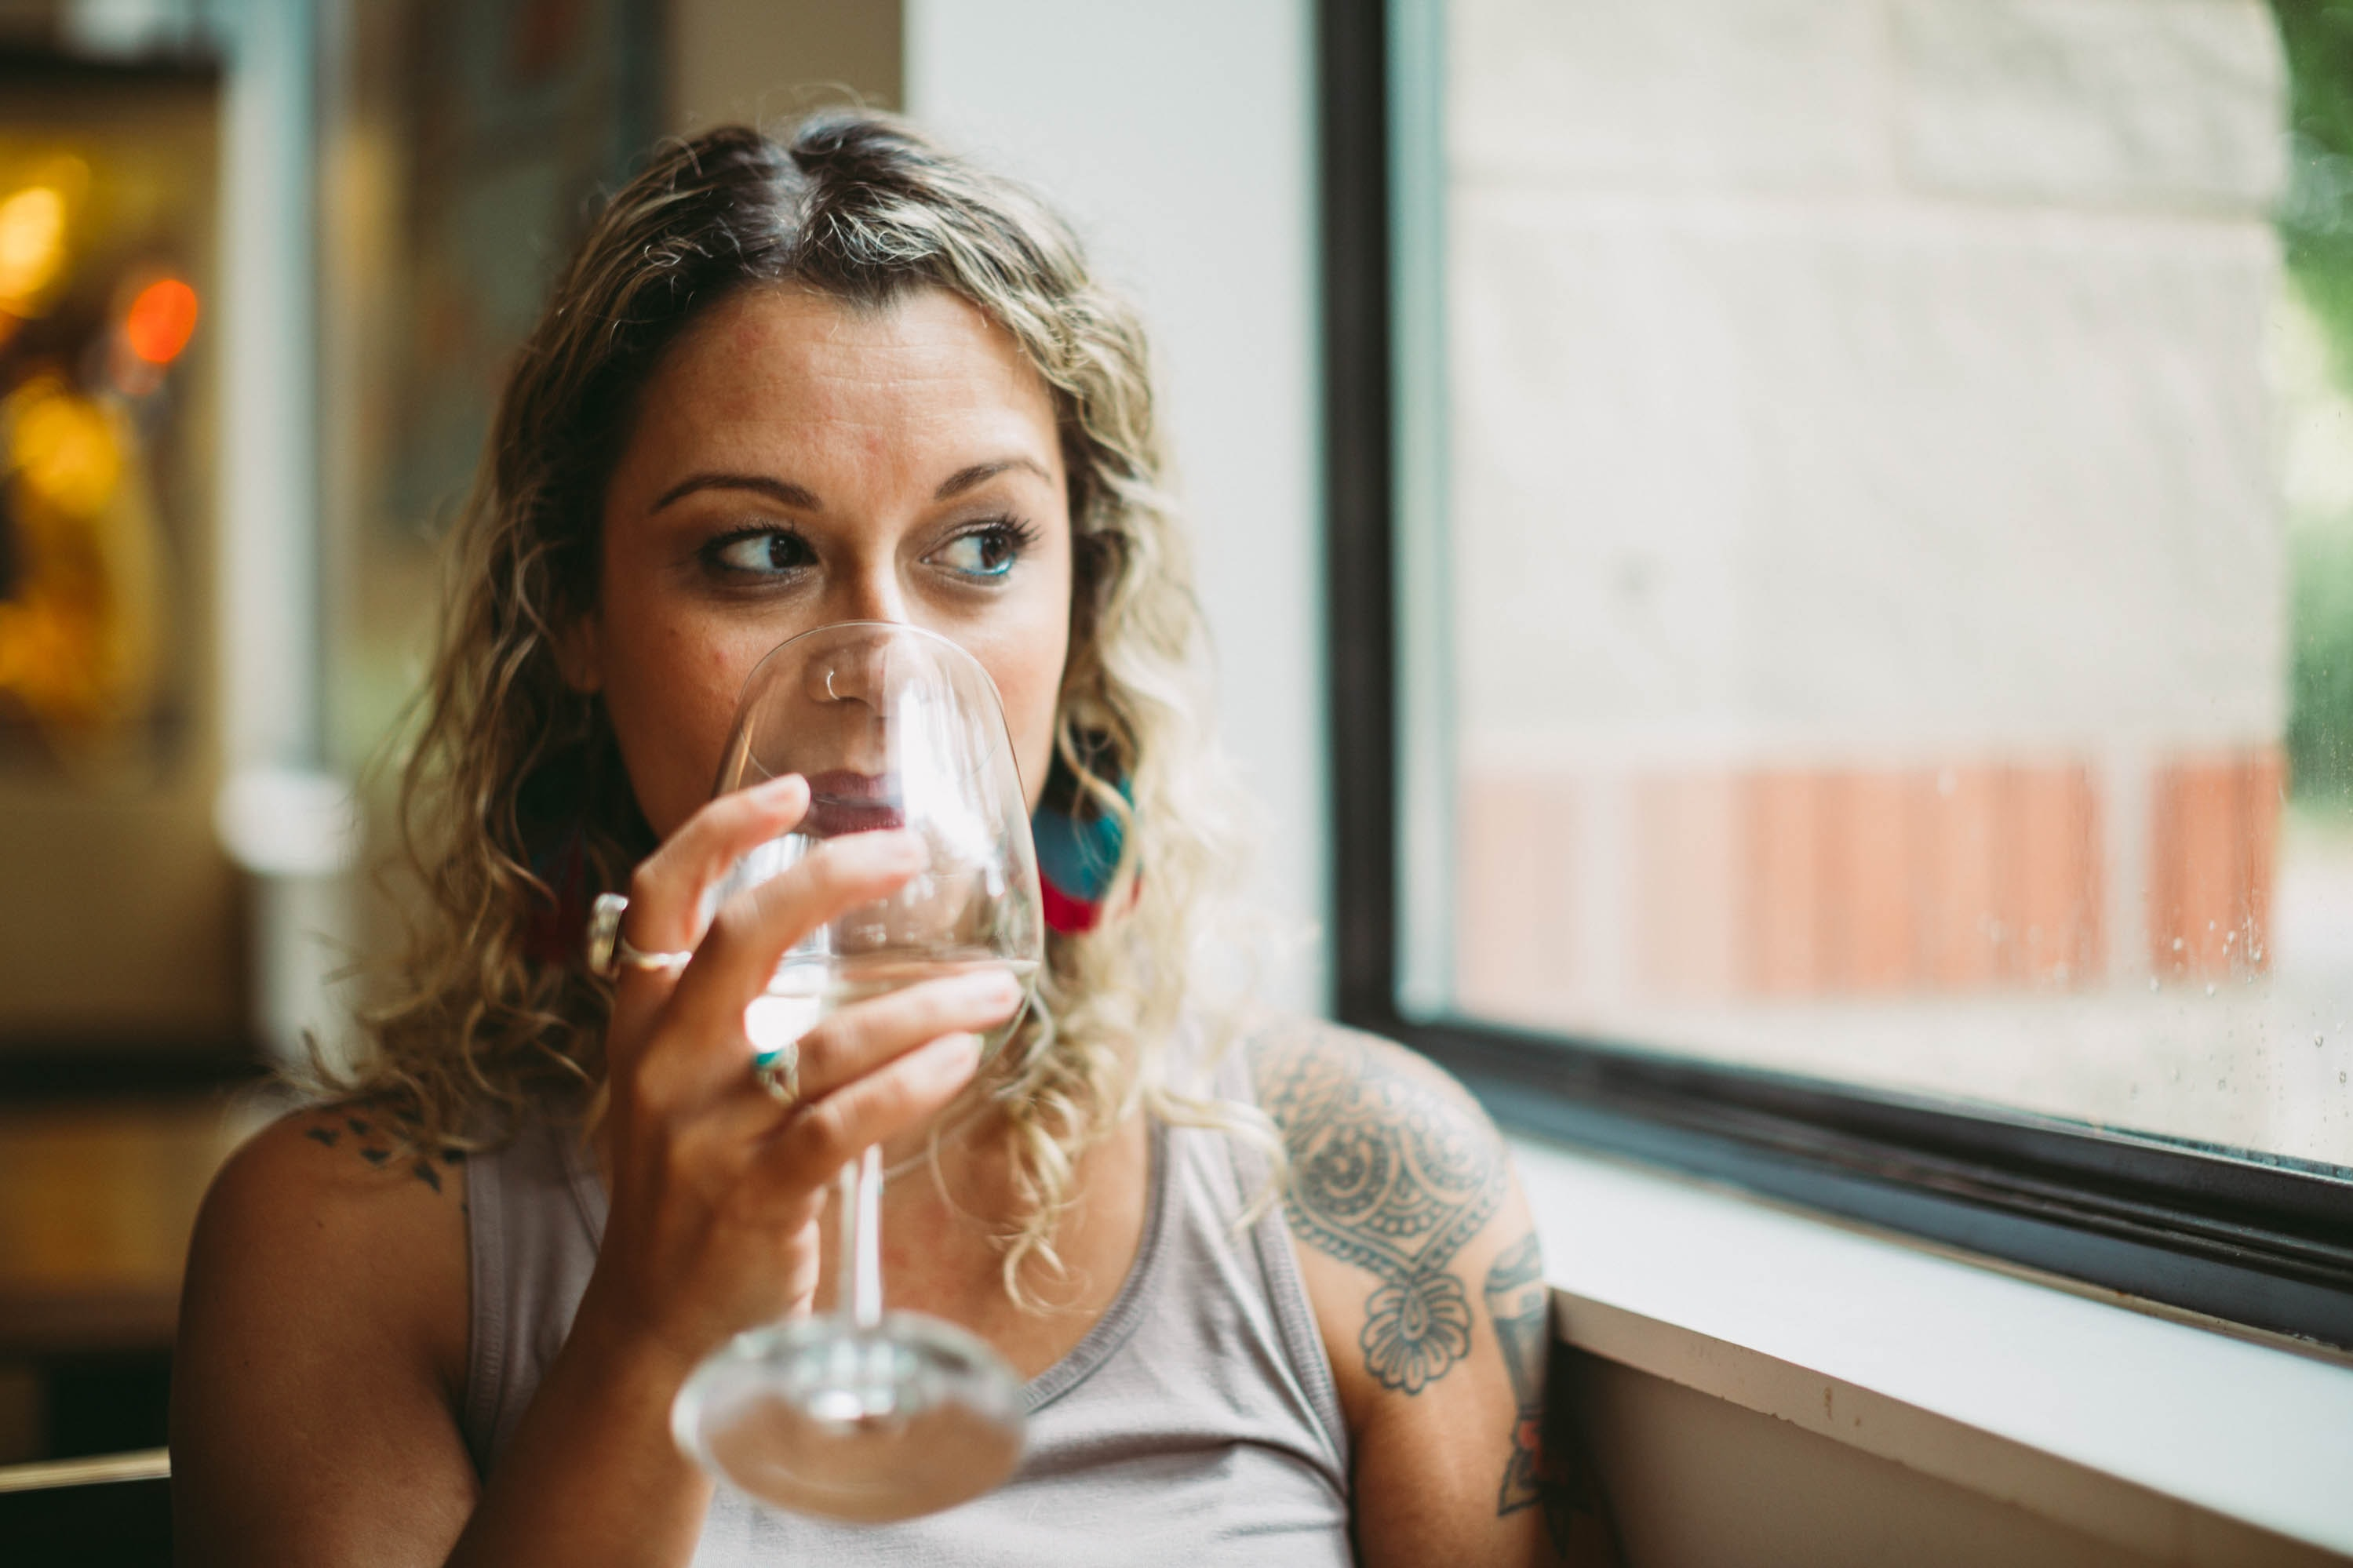 woman drinking using a wine glass beside a glass window at daytime